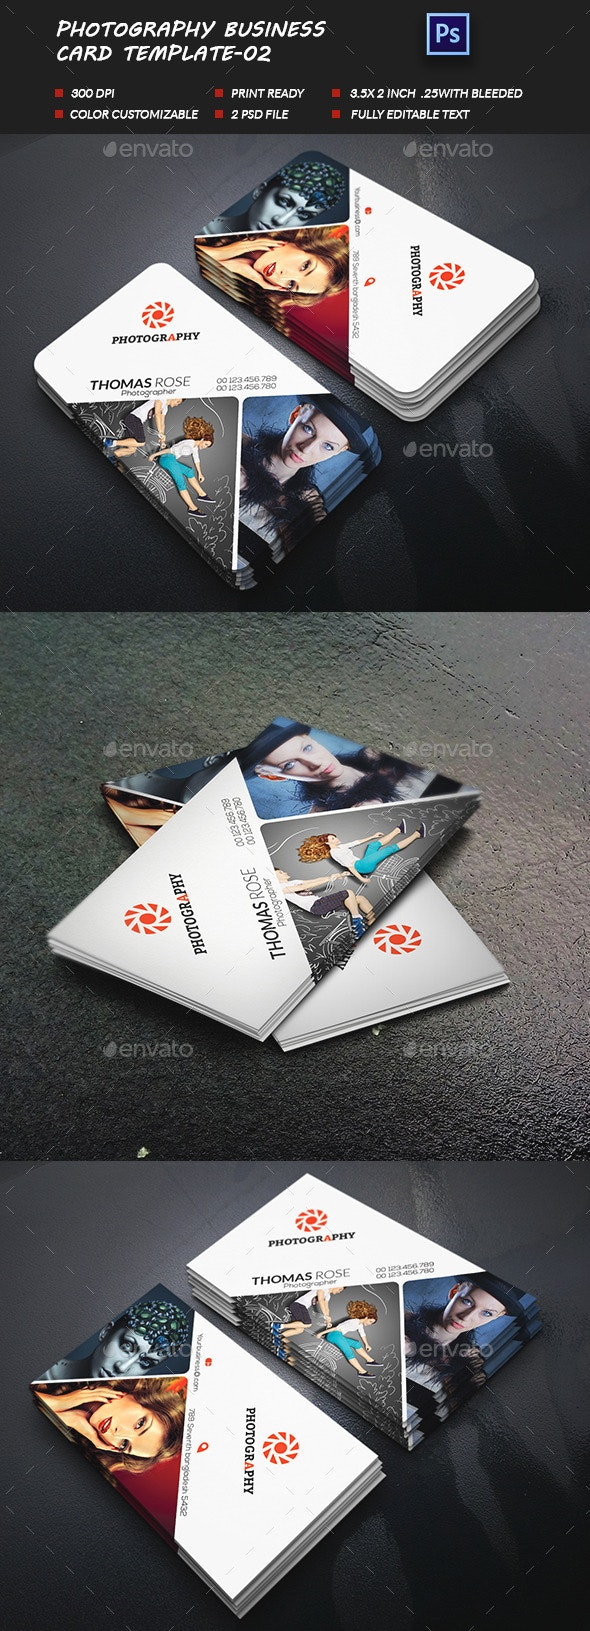 Photography Business Card-02 - Business Cards Print Templates